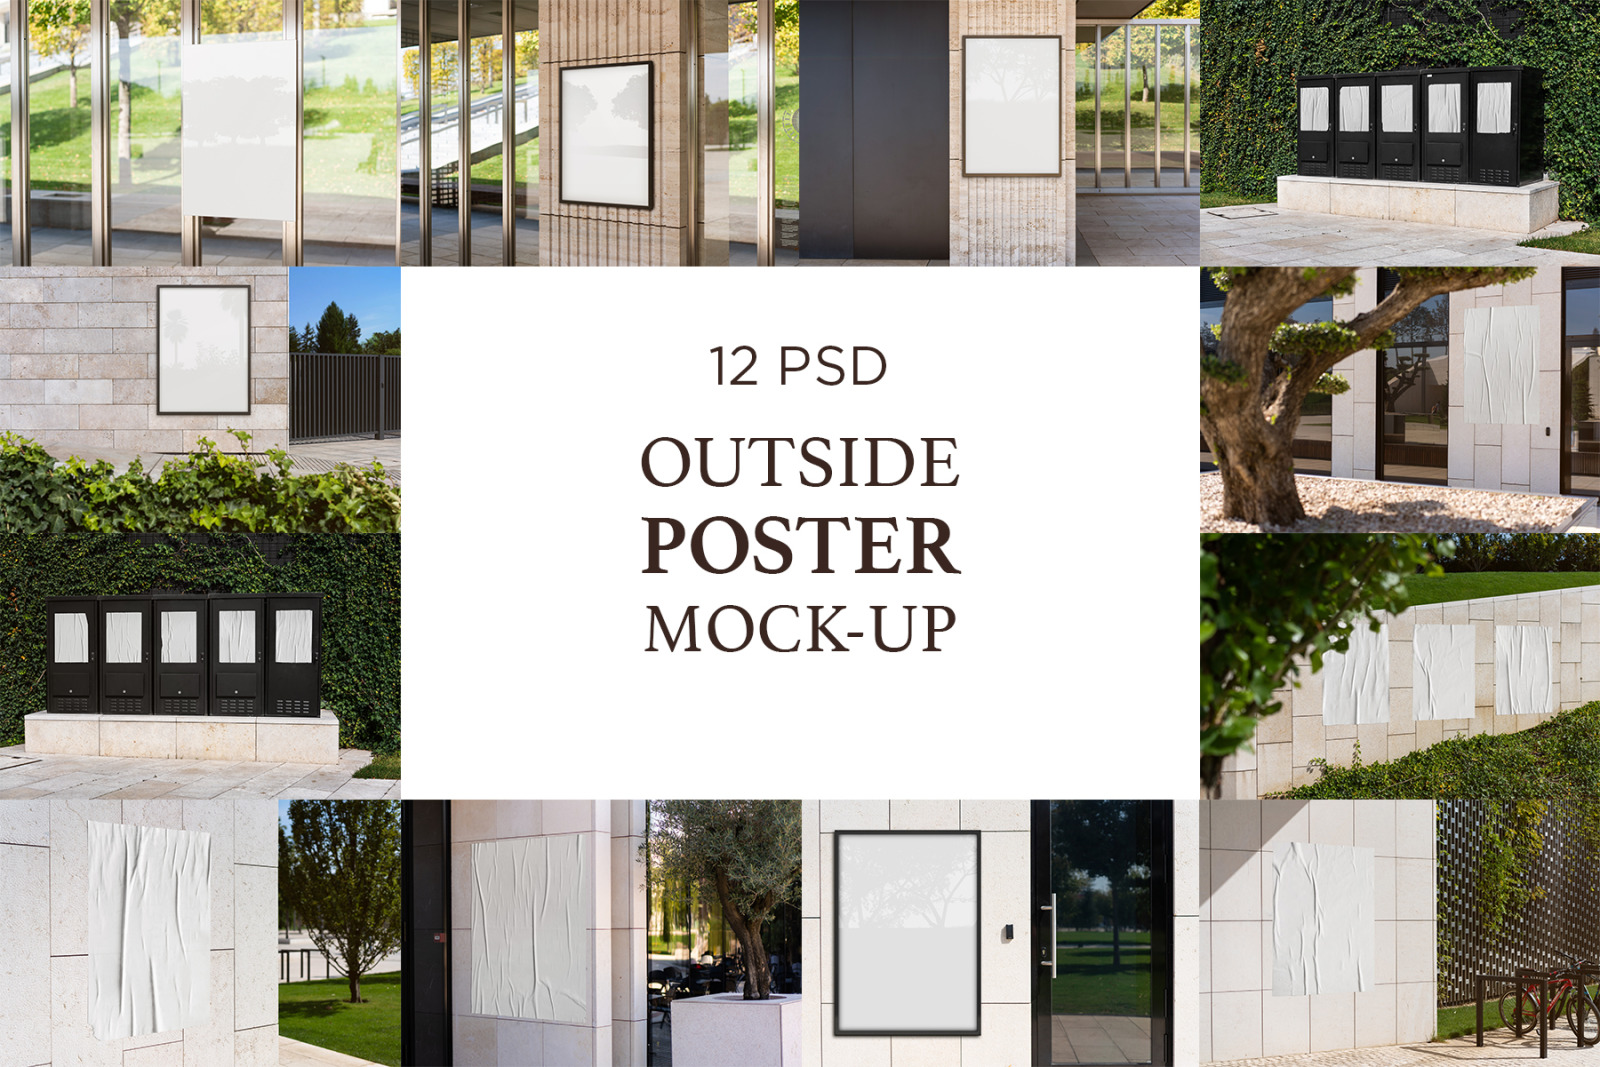 Outside Poster Mock-Up's